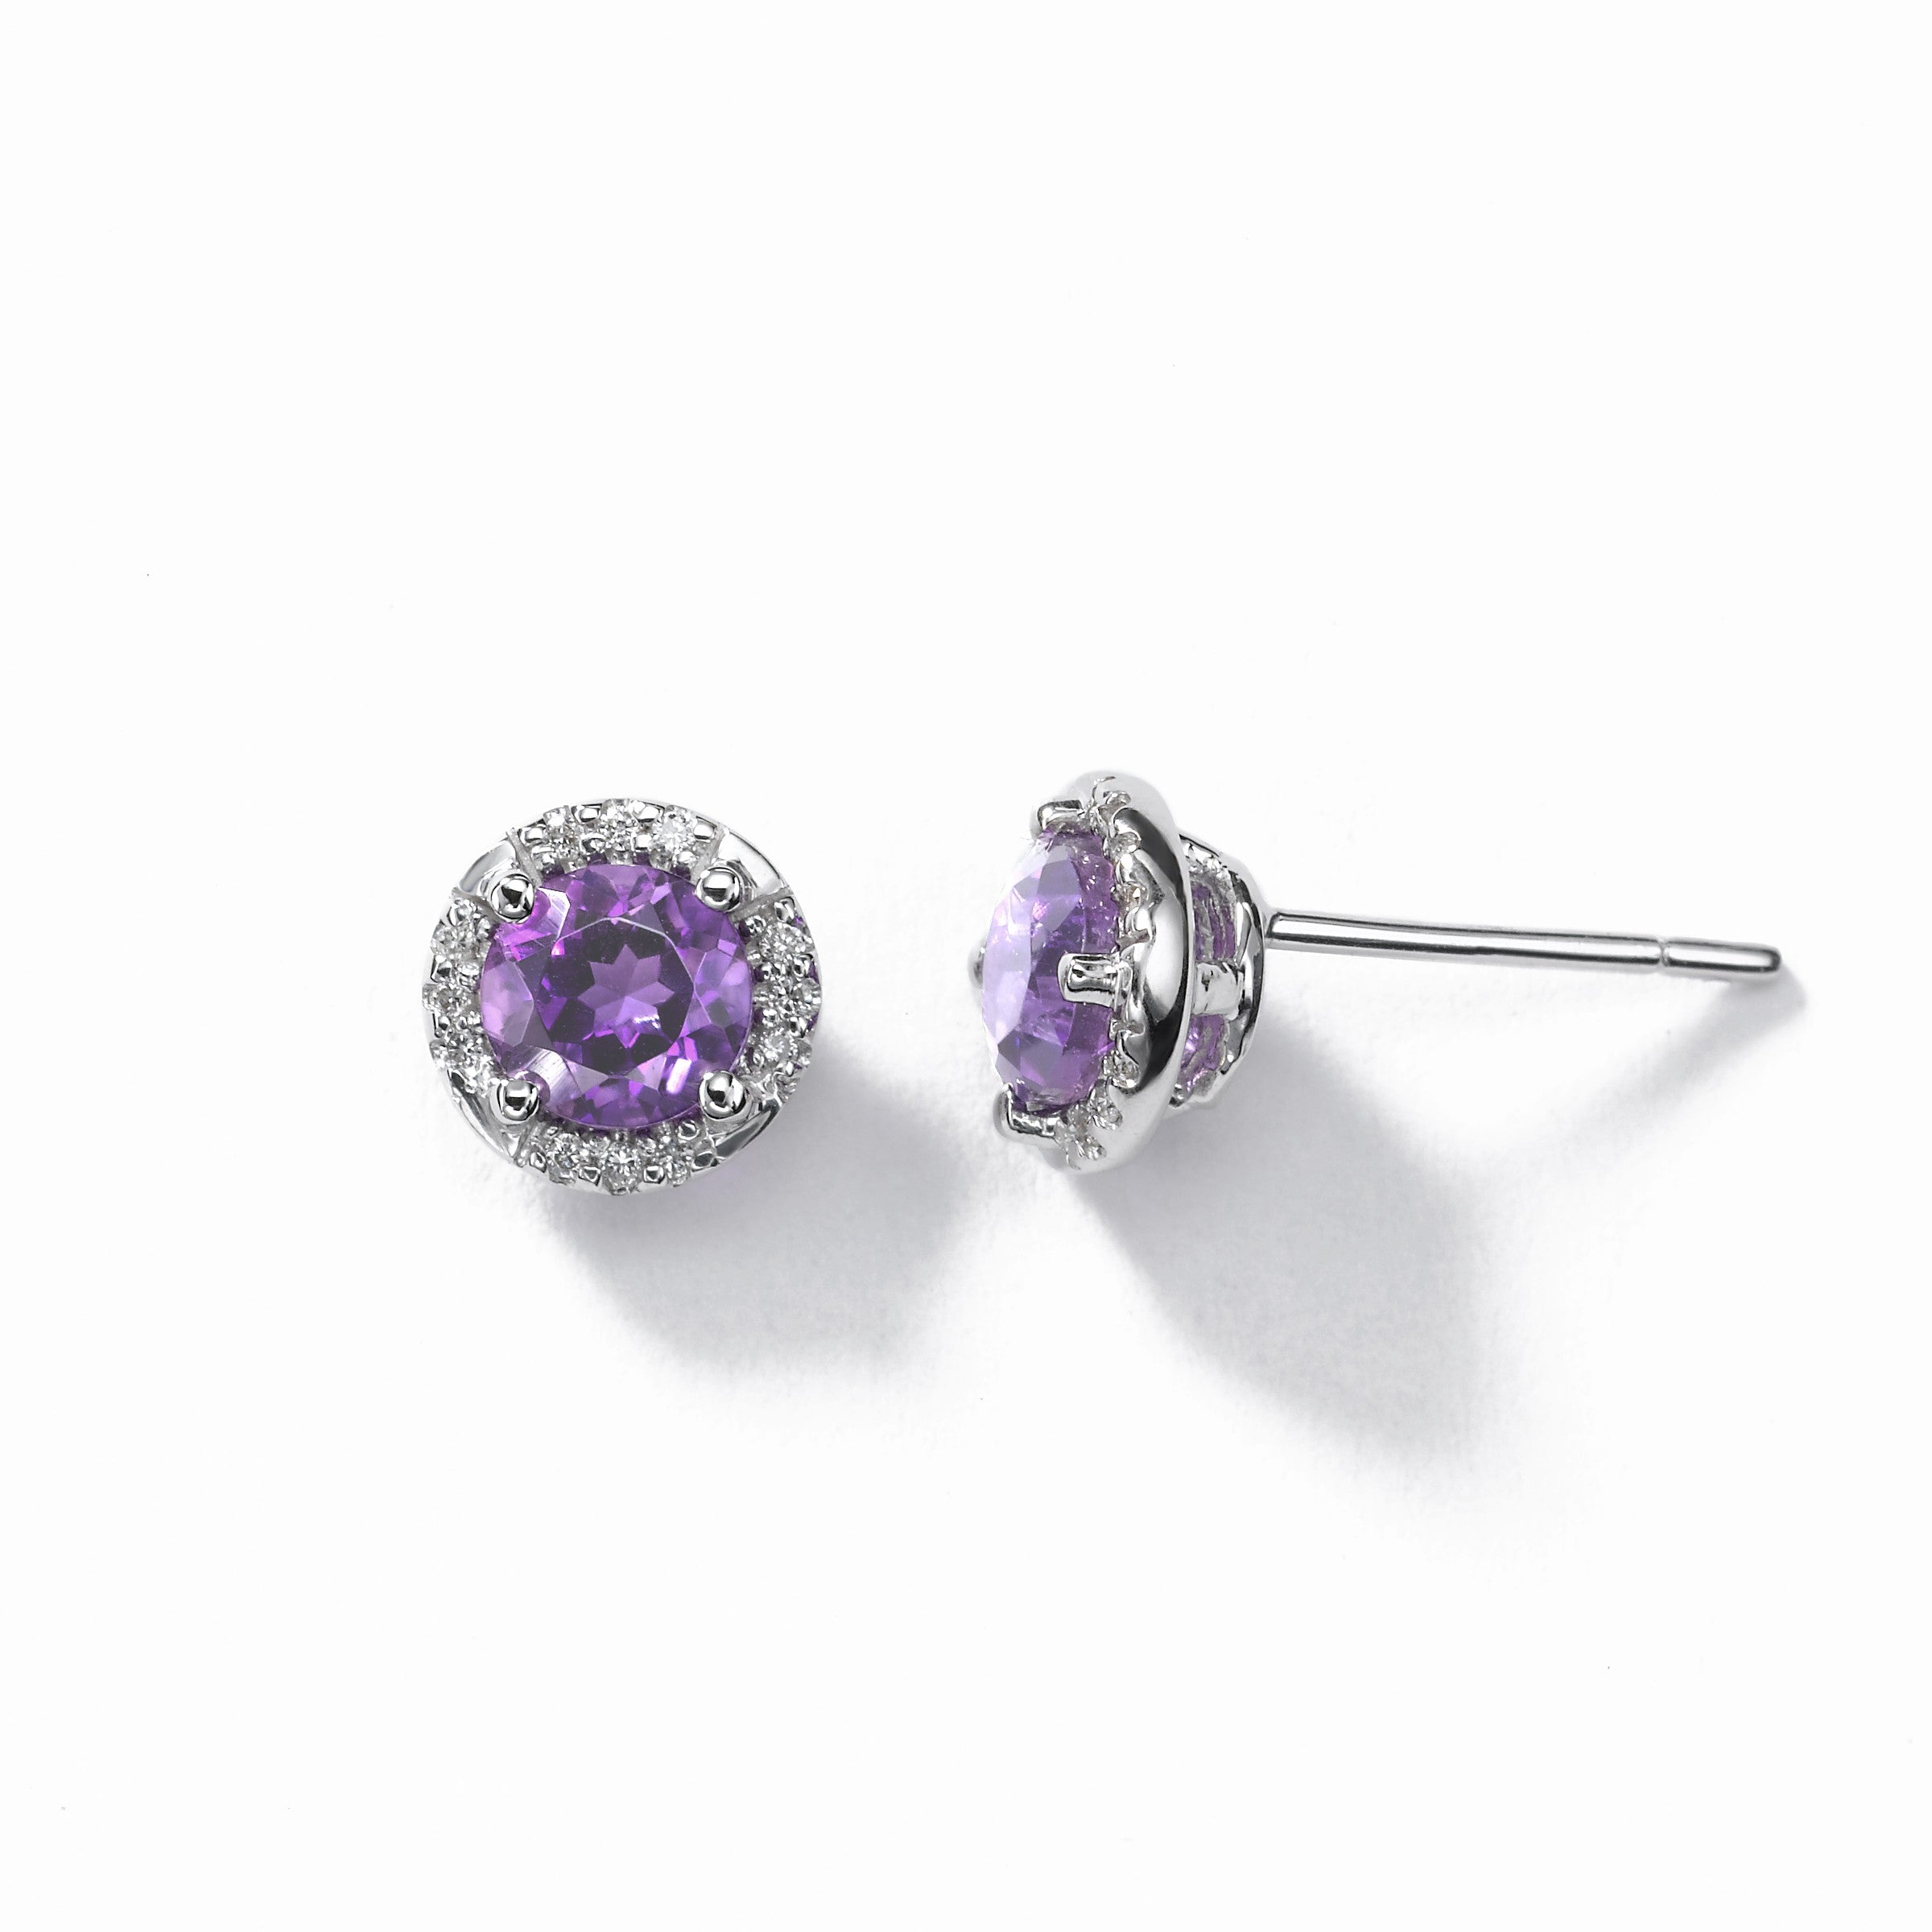 Round Amethyst And Diamond Earrings, 14K White Gold